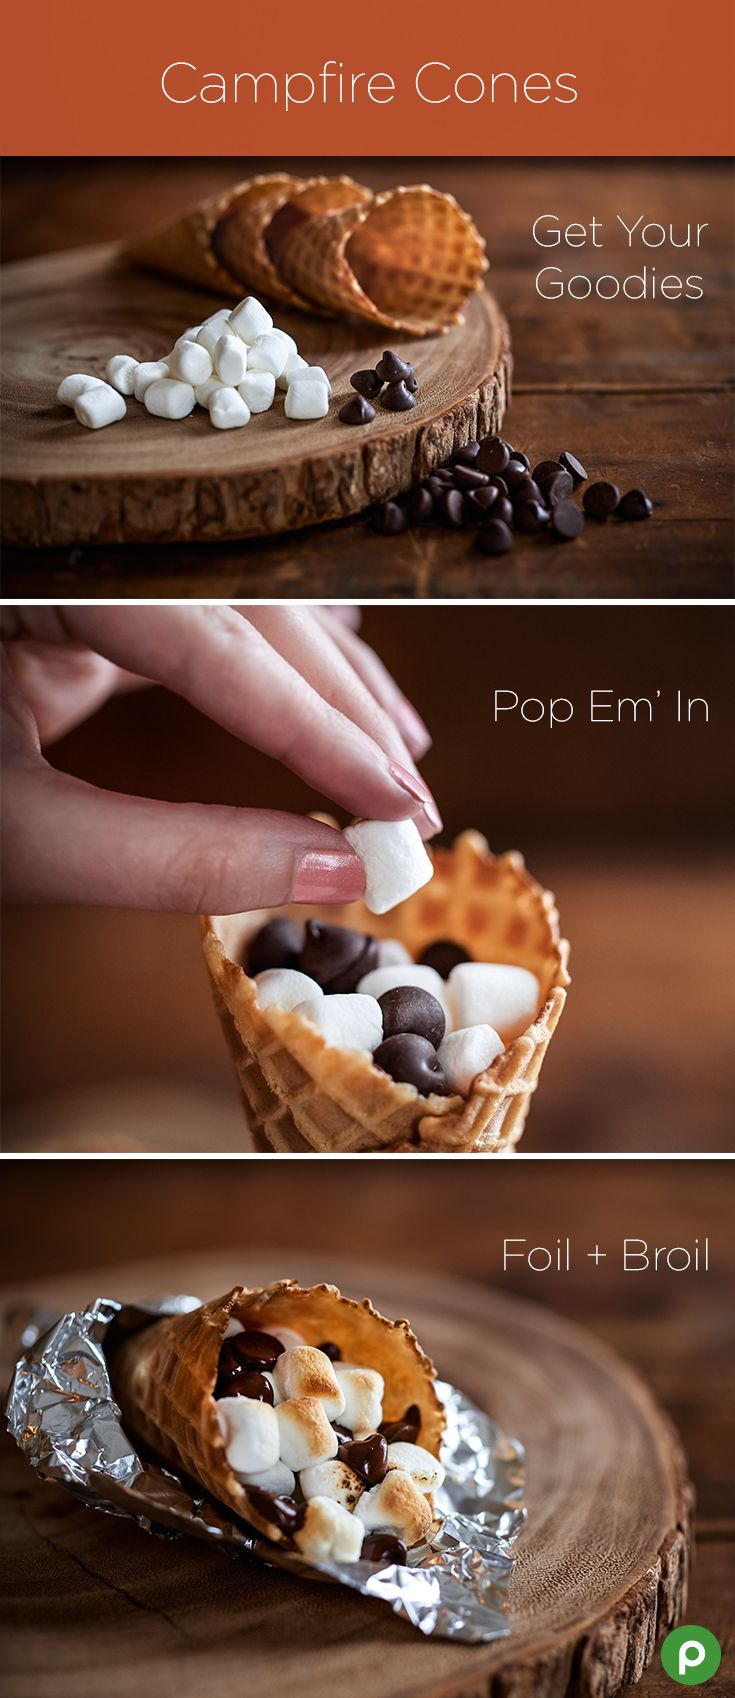 Fill your favorite waffle cones with chocolate chips and mini marshmallows. Then, place on foil and broil for 2-3 minutes to get melty, campfire-inspired indoor s'mores.